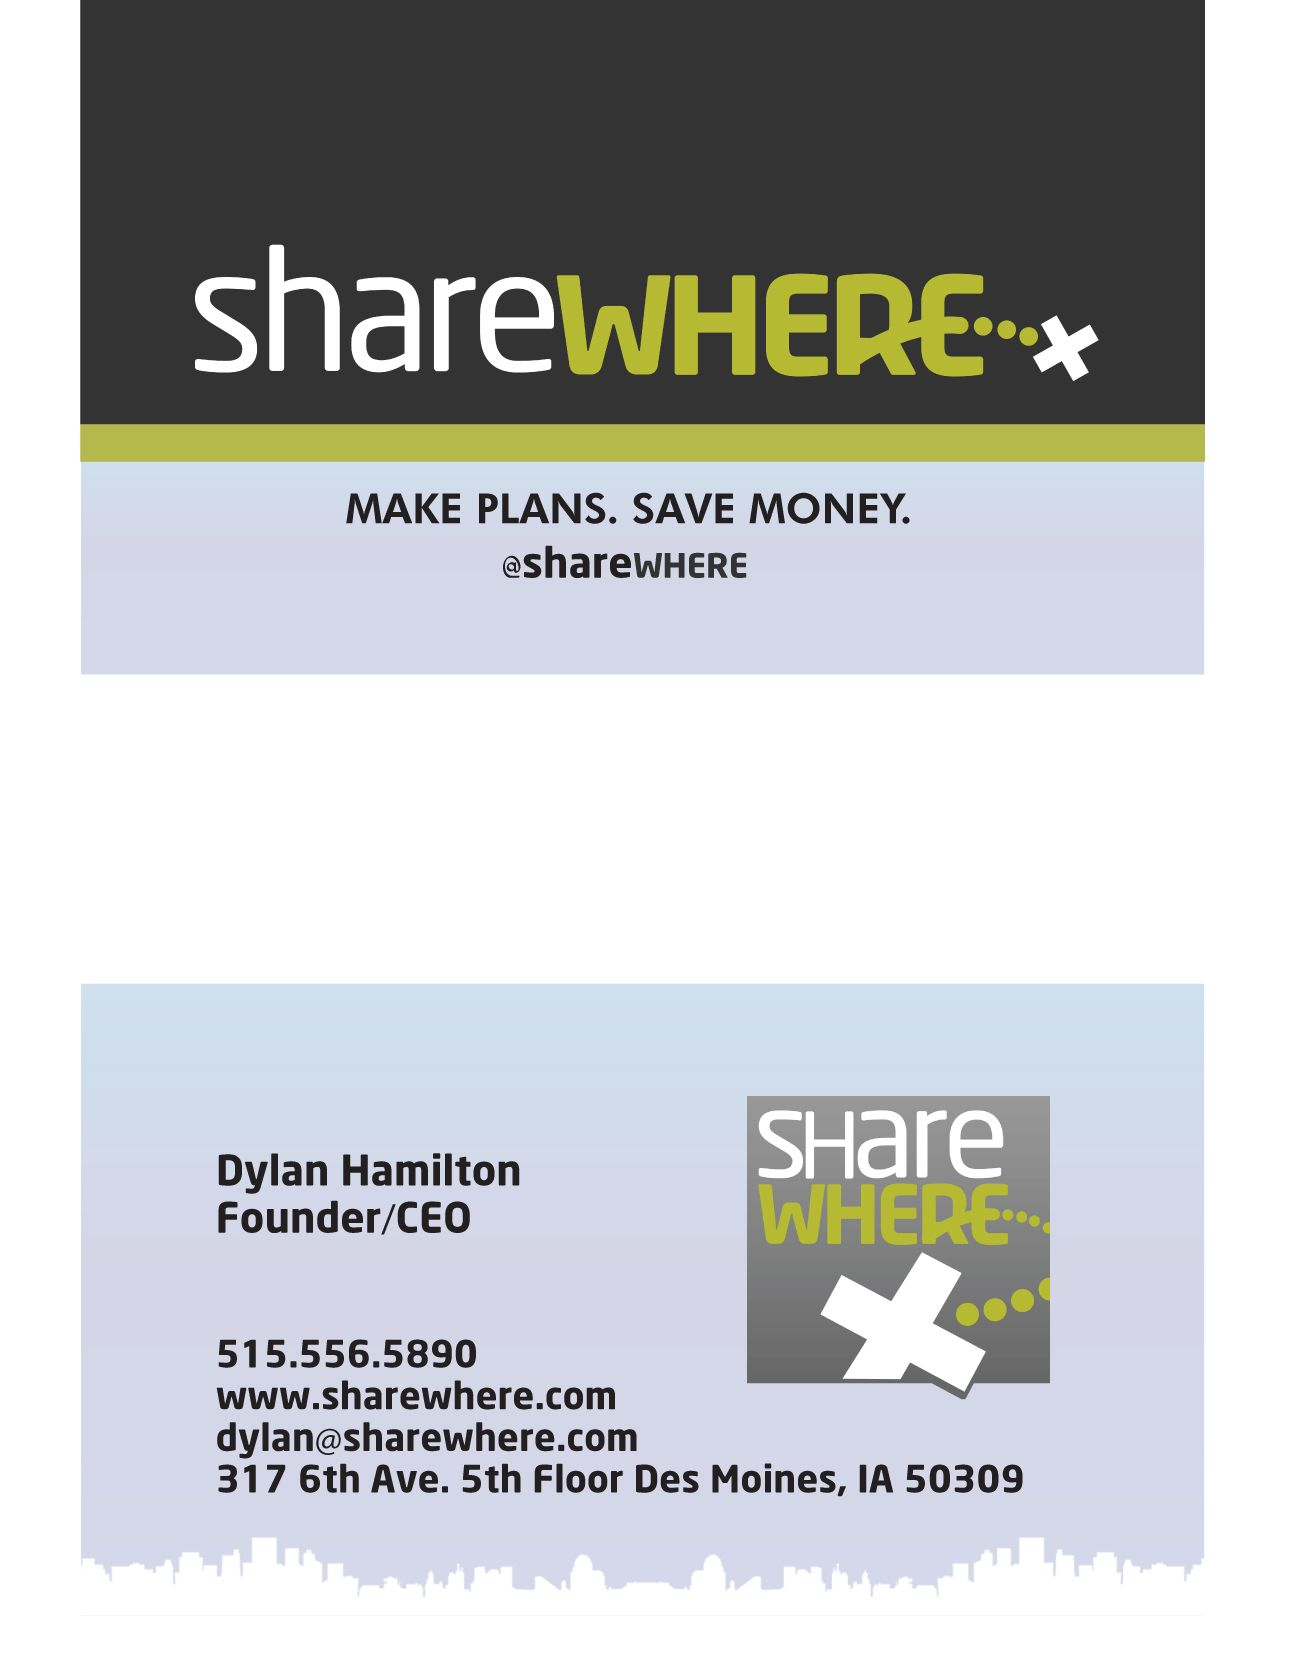 This is a front and back design for a business card for a startup